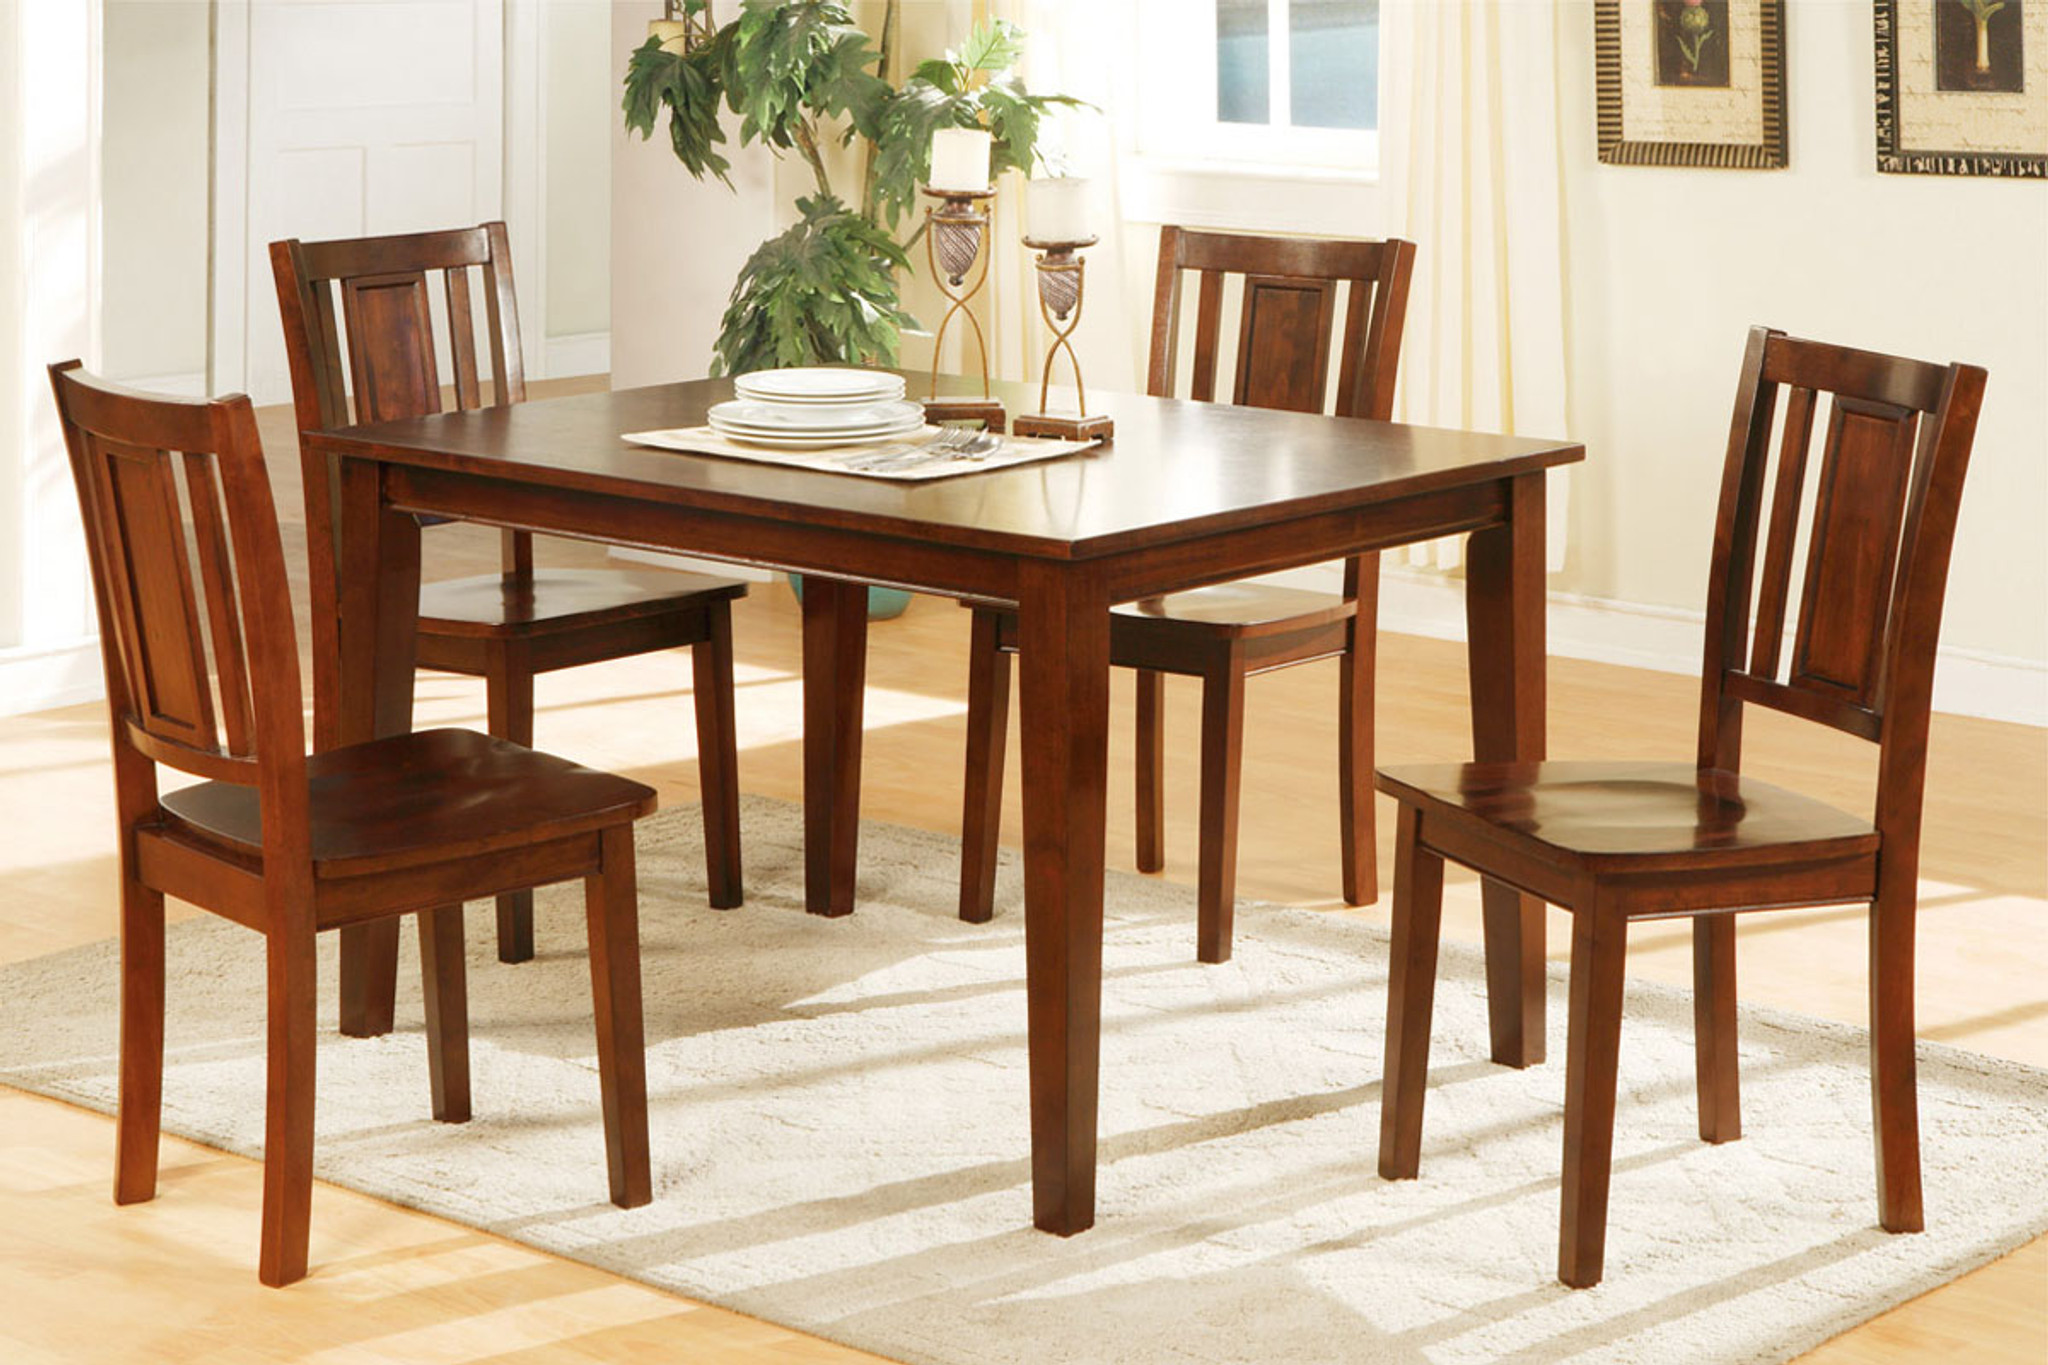 Tremendous 5 Pcs Rectangular Dark Cherry Finish Dining Room Set Caraccident5 Cool Chair Designs And Ideas Caraccident5Info